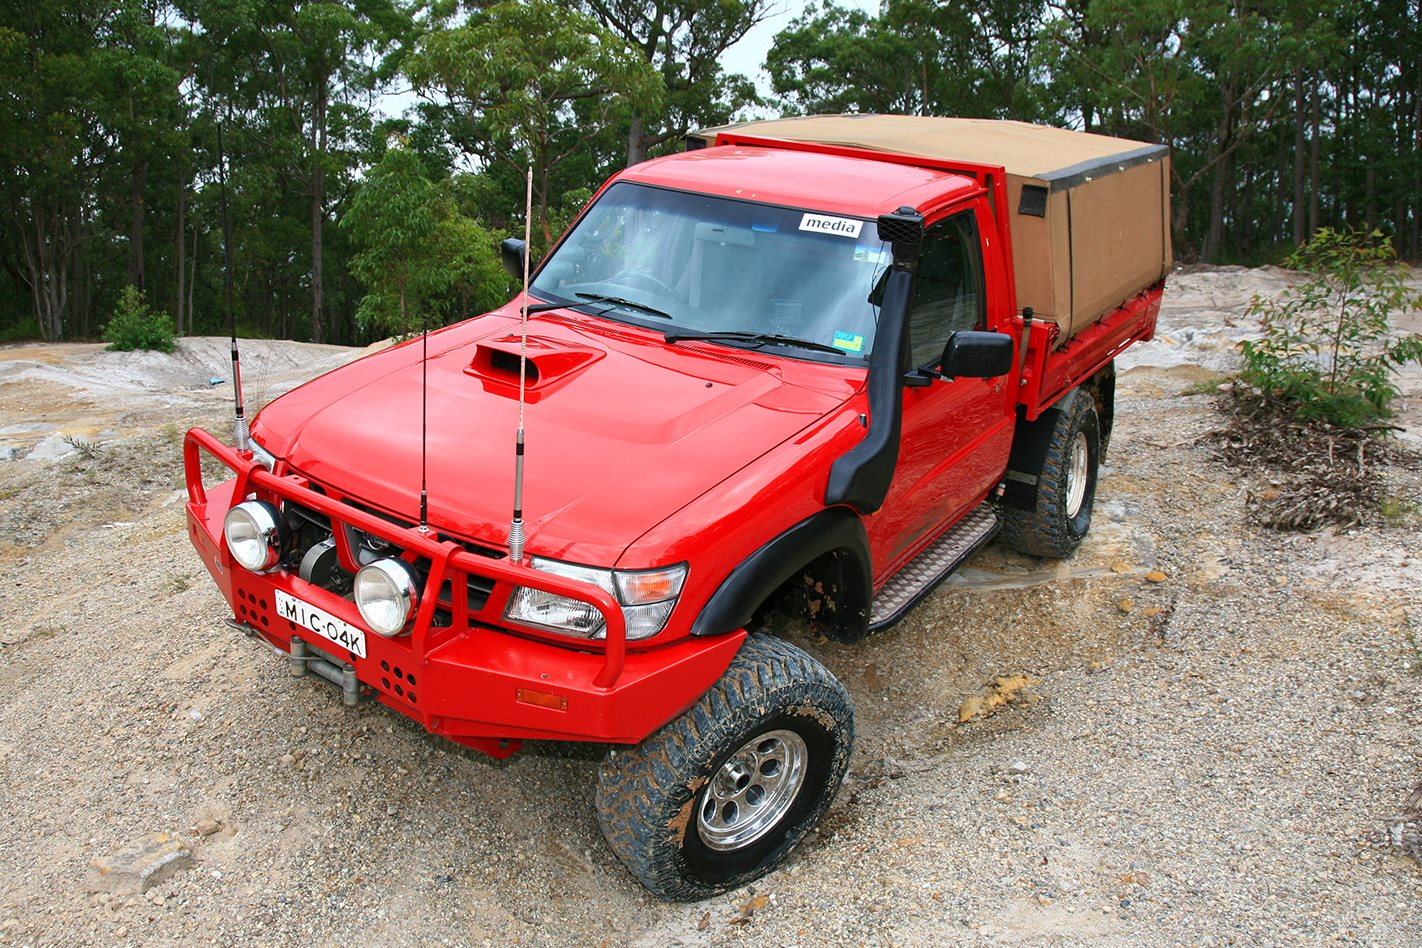 custom 4x4 nissan gu patrol with toyota engine 4x4 australia. Black Bedroom Furniture Sets. Home Design Ideas